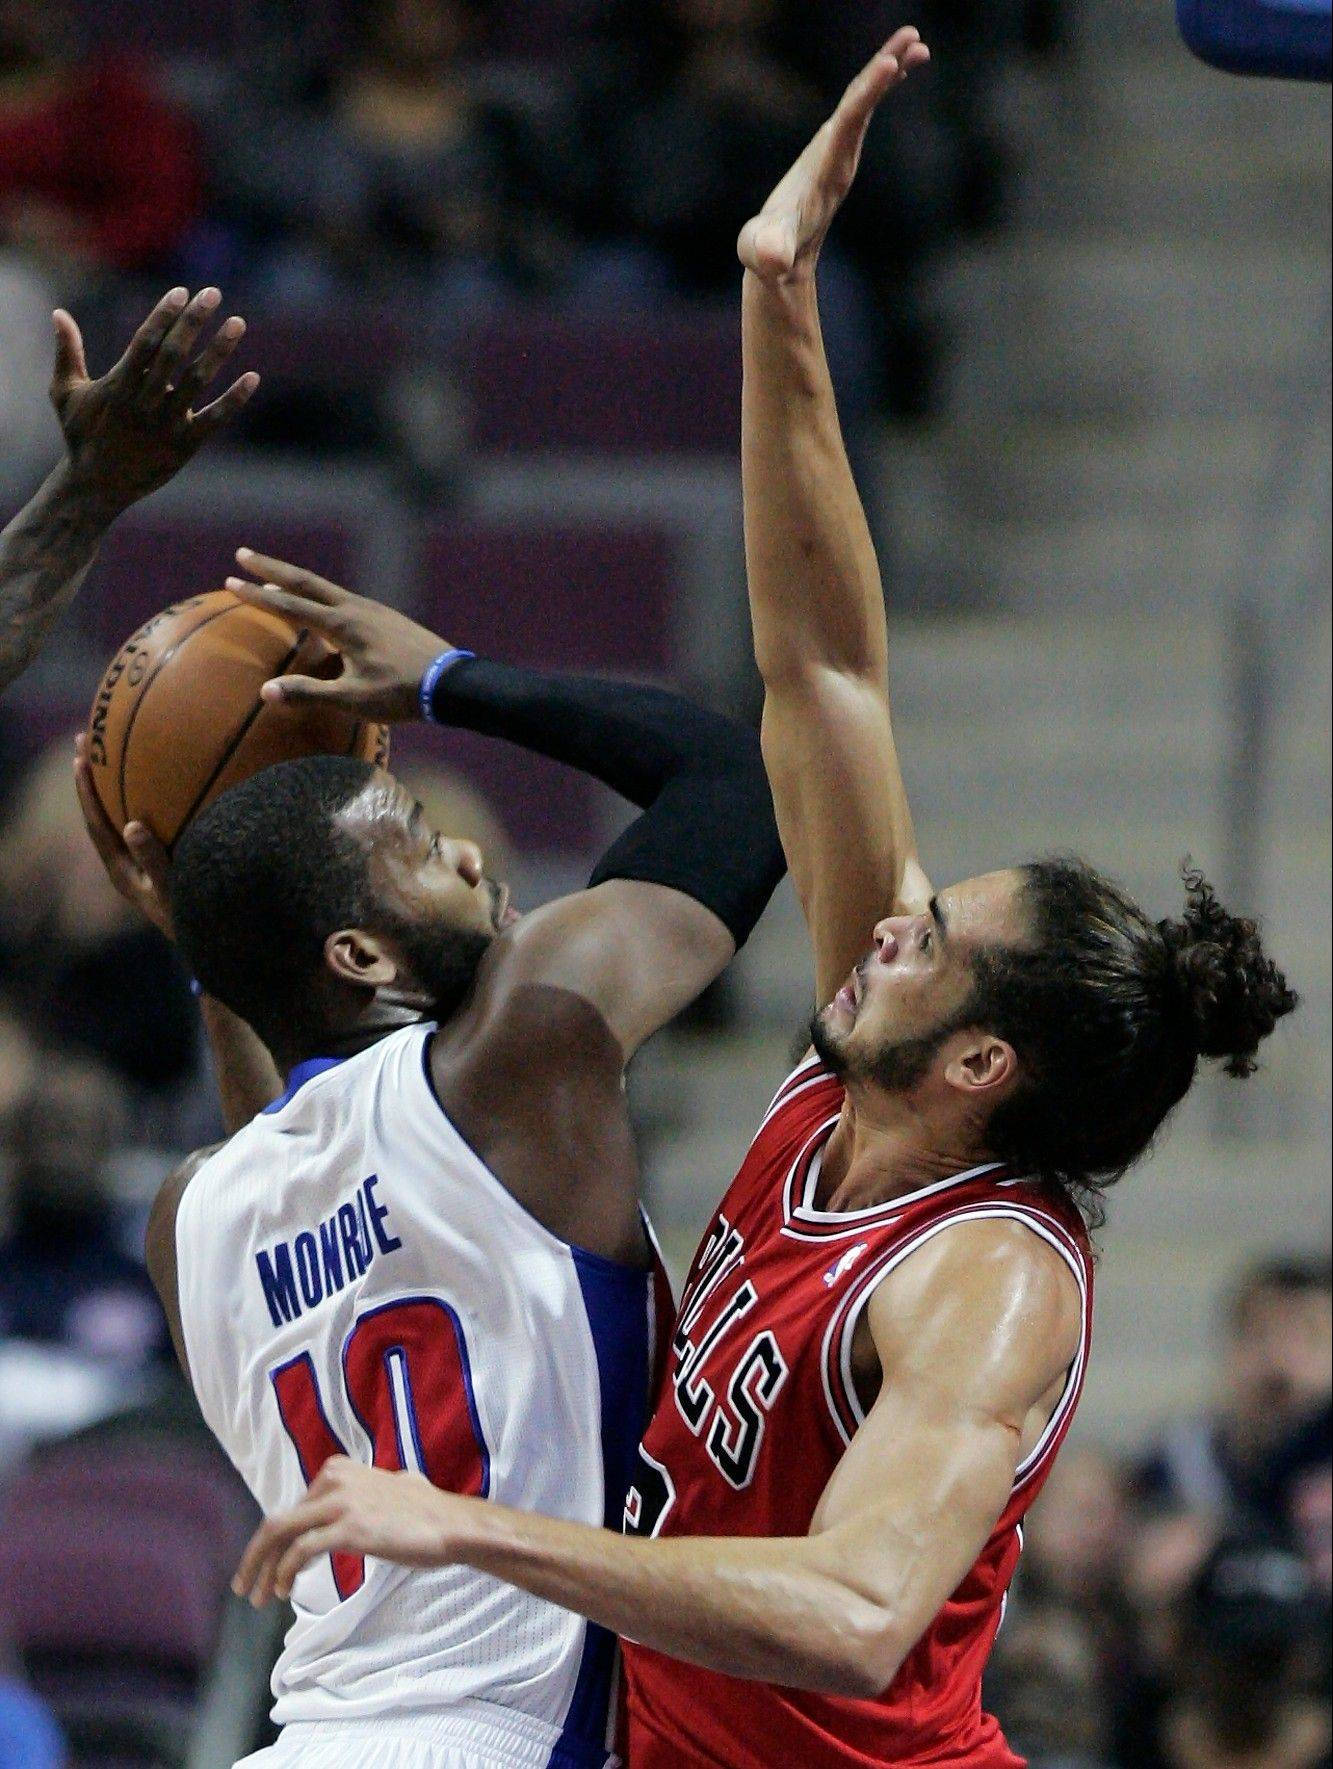 The Pistons� Greg Monroe runs into defensive pressure from the Bulls� Joakim Noah on Friday.